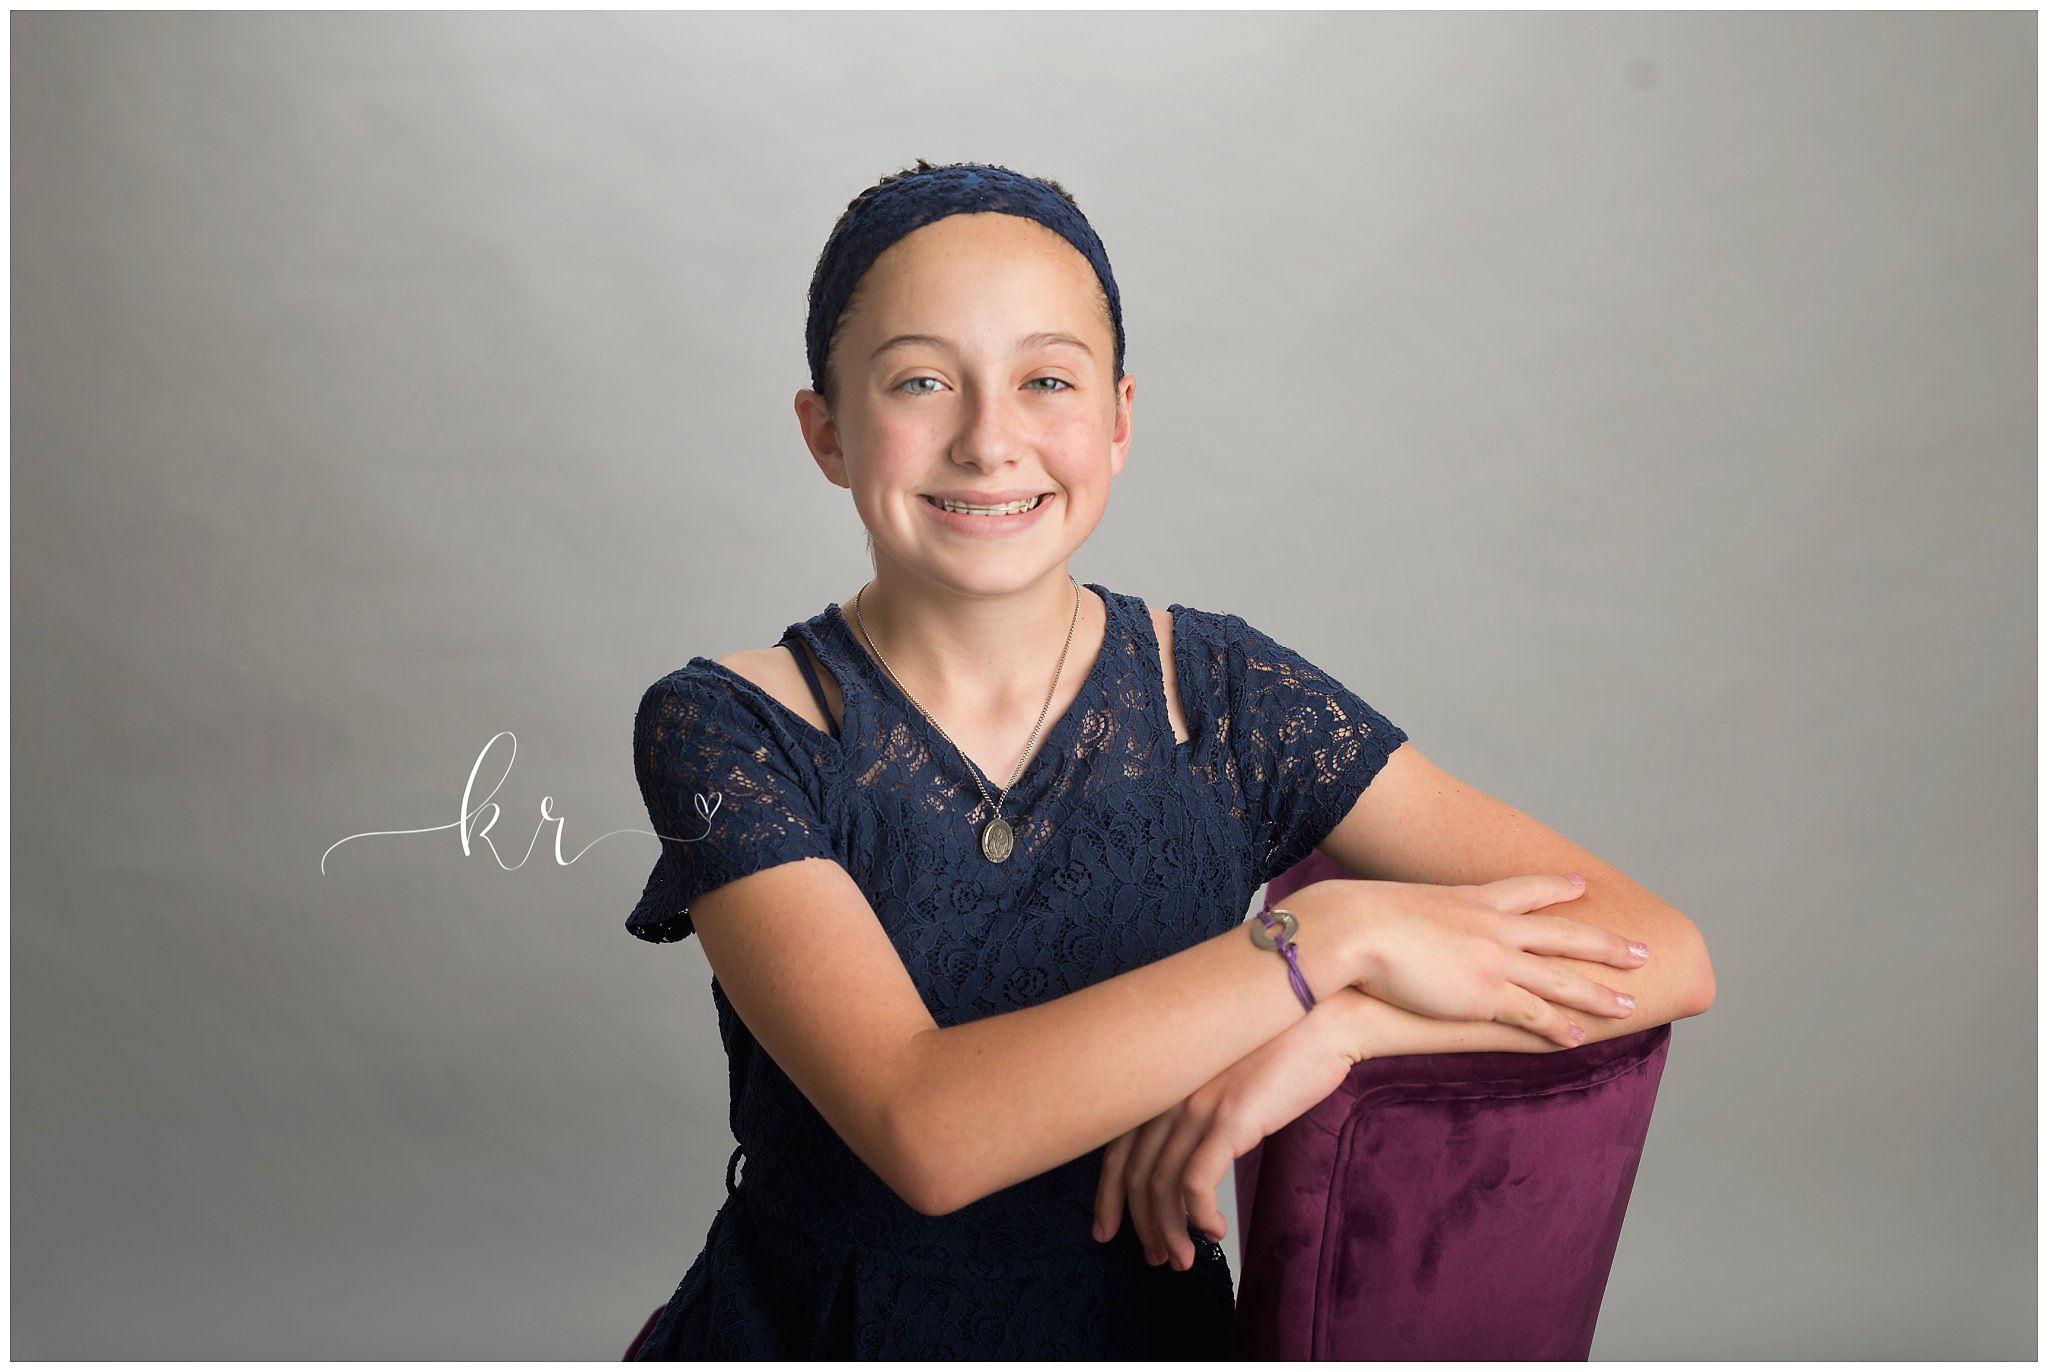 Kathy Rogers Photography_Beautifully Different_Children Photographer in Elyria_Epilepsy